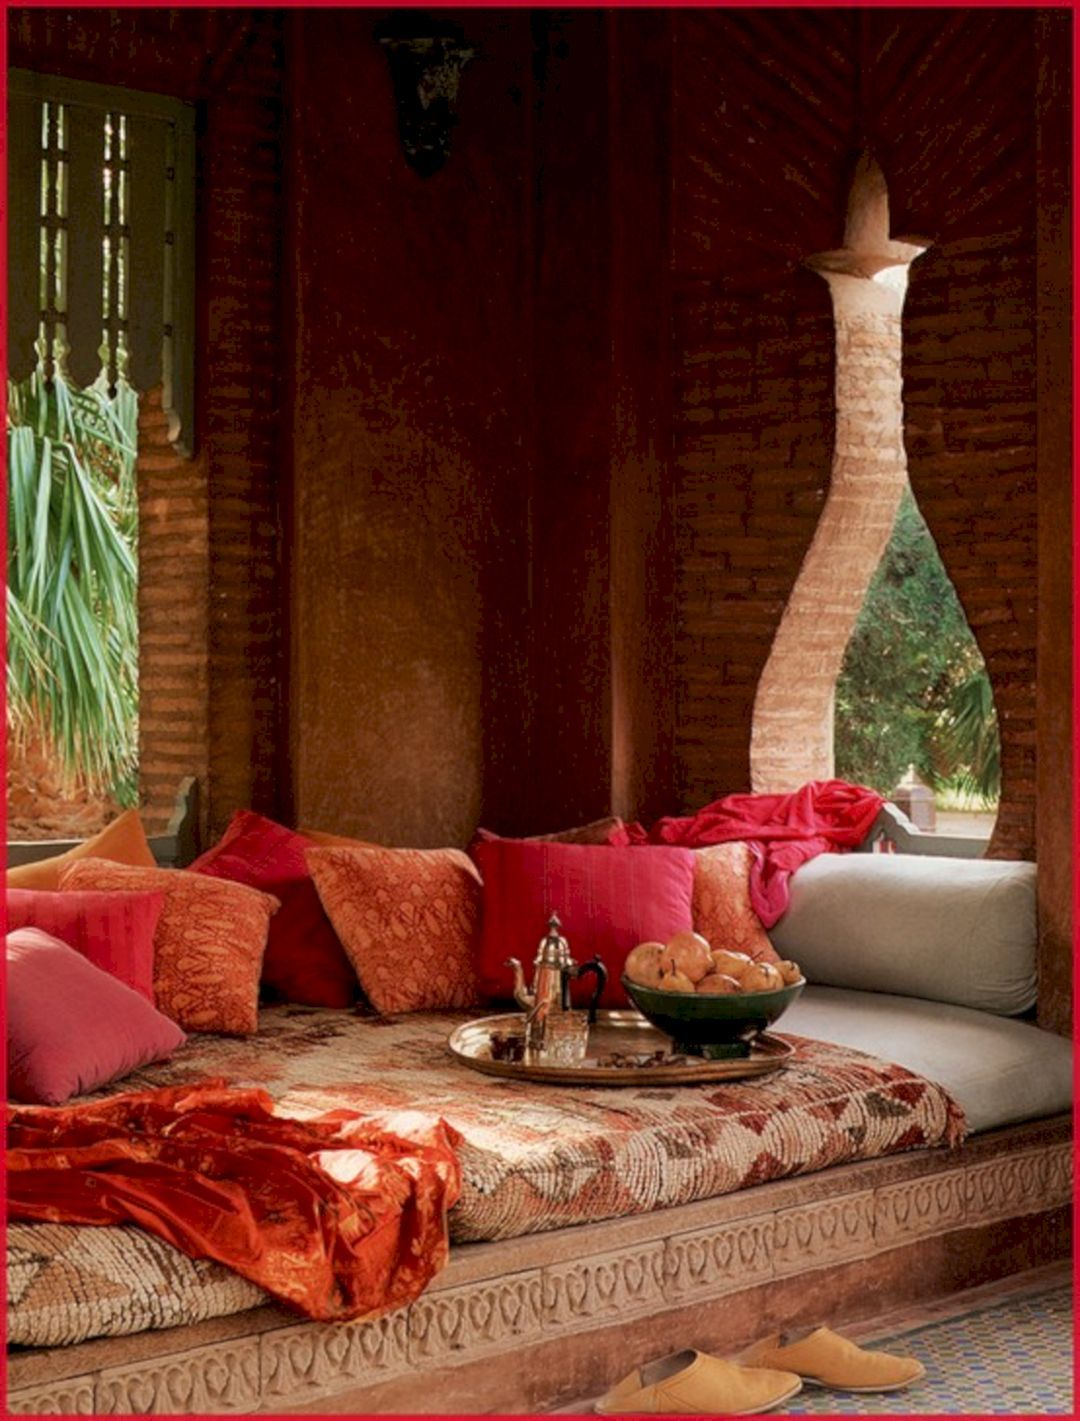 Beautiful Moroccan Pillow That Can Increase Your Home Beauty: 12+ ...